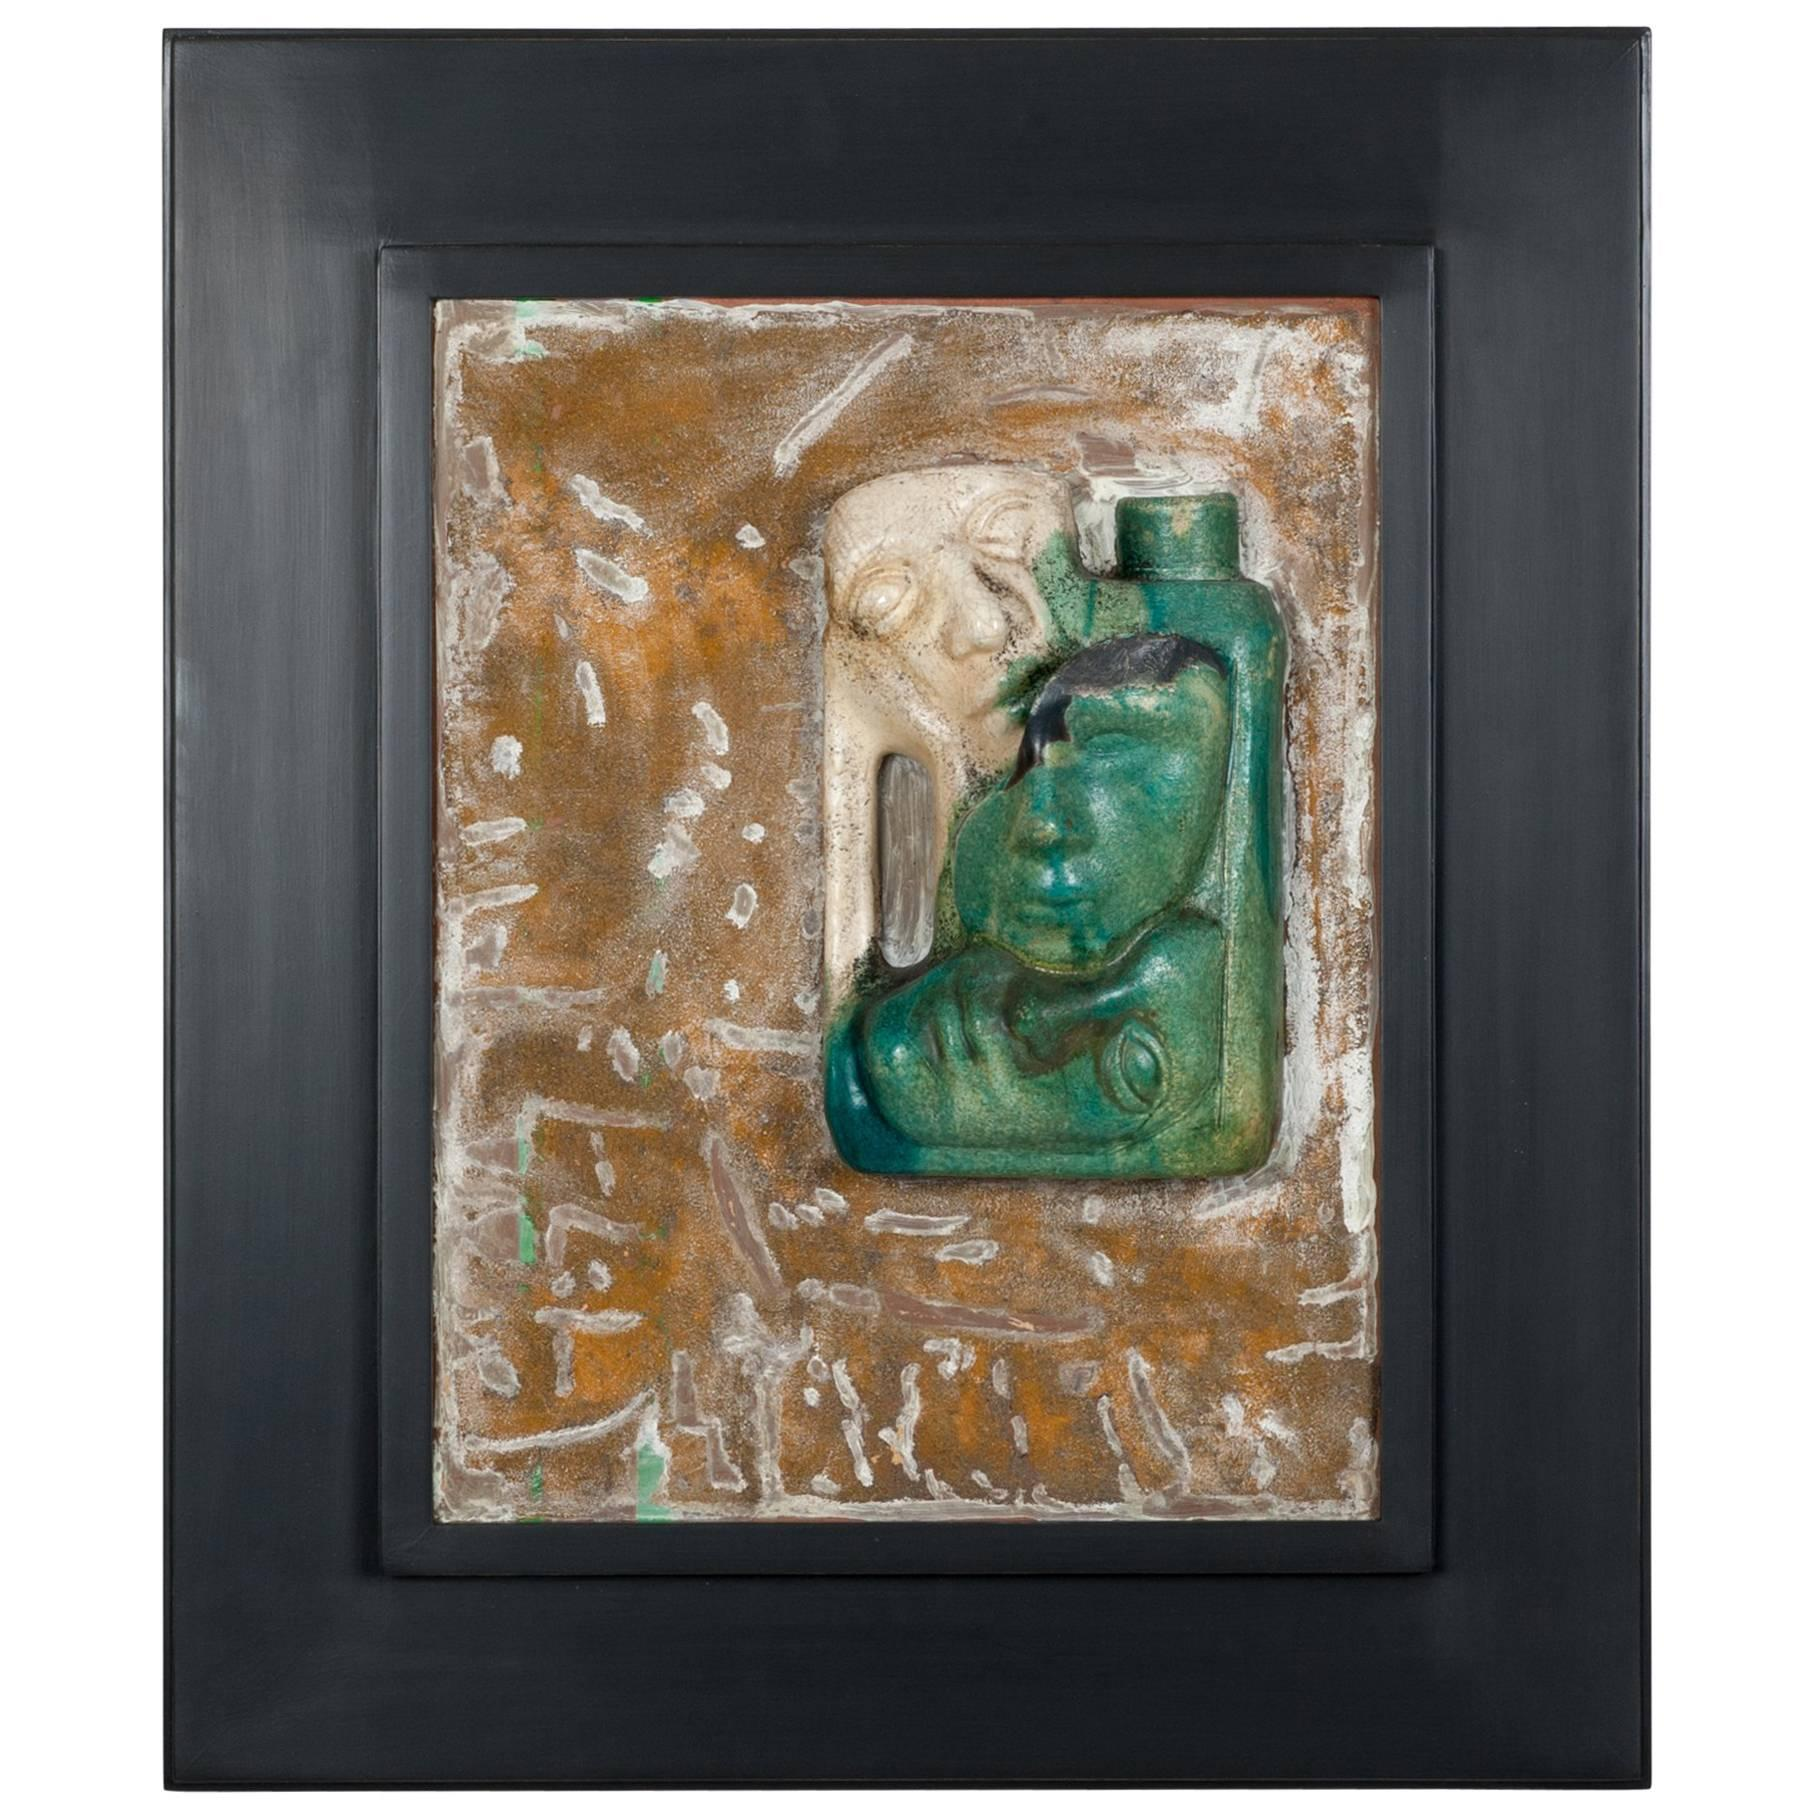 Mid-Century Italian Wall-Mounted Ceramic Sculpture Composition, Monogrammed